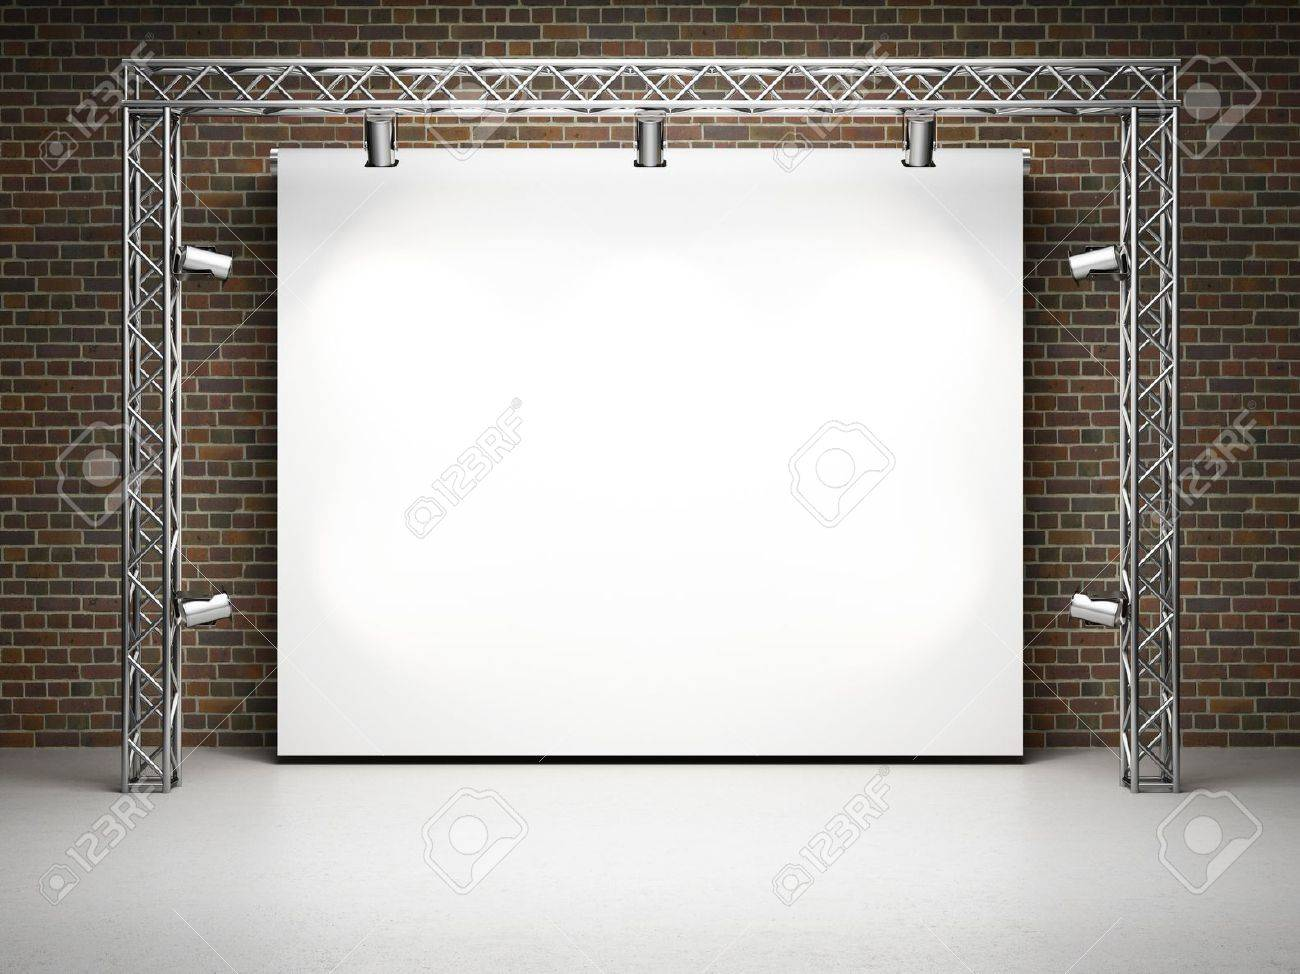 Blank trade exhibition stand with screen and spot lights on brick wall - 14470175